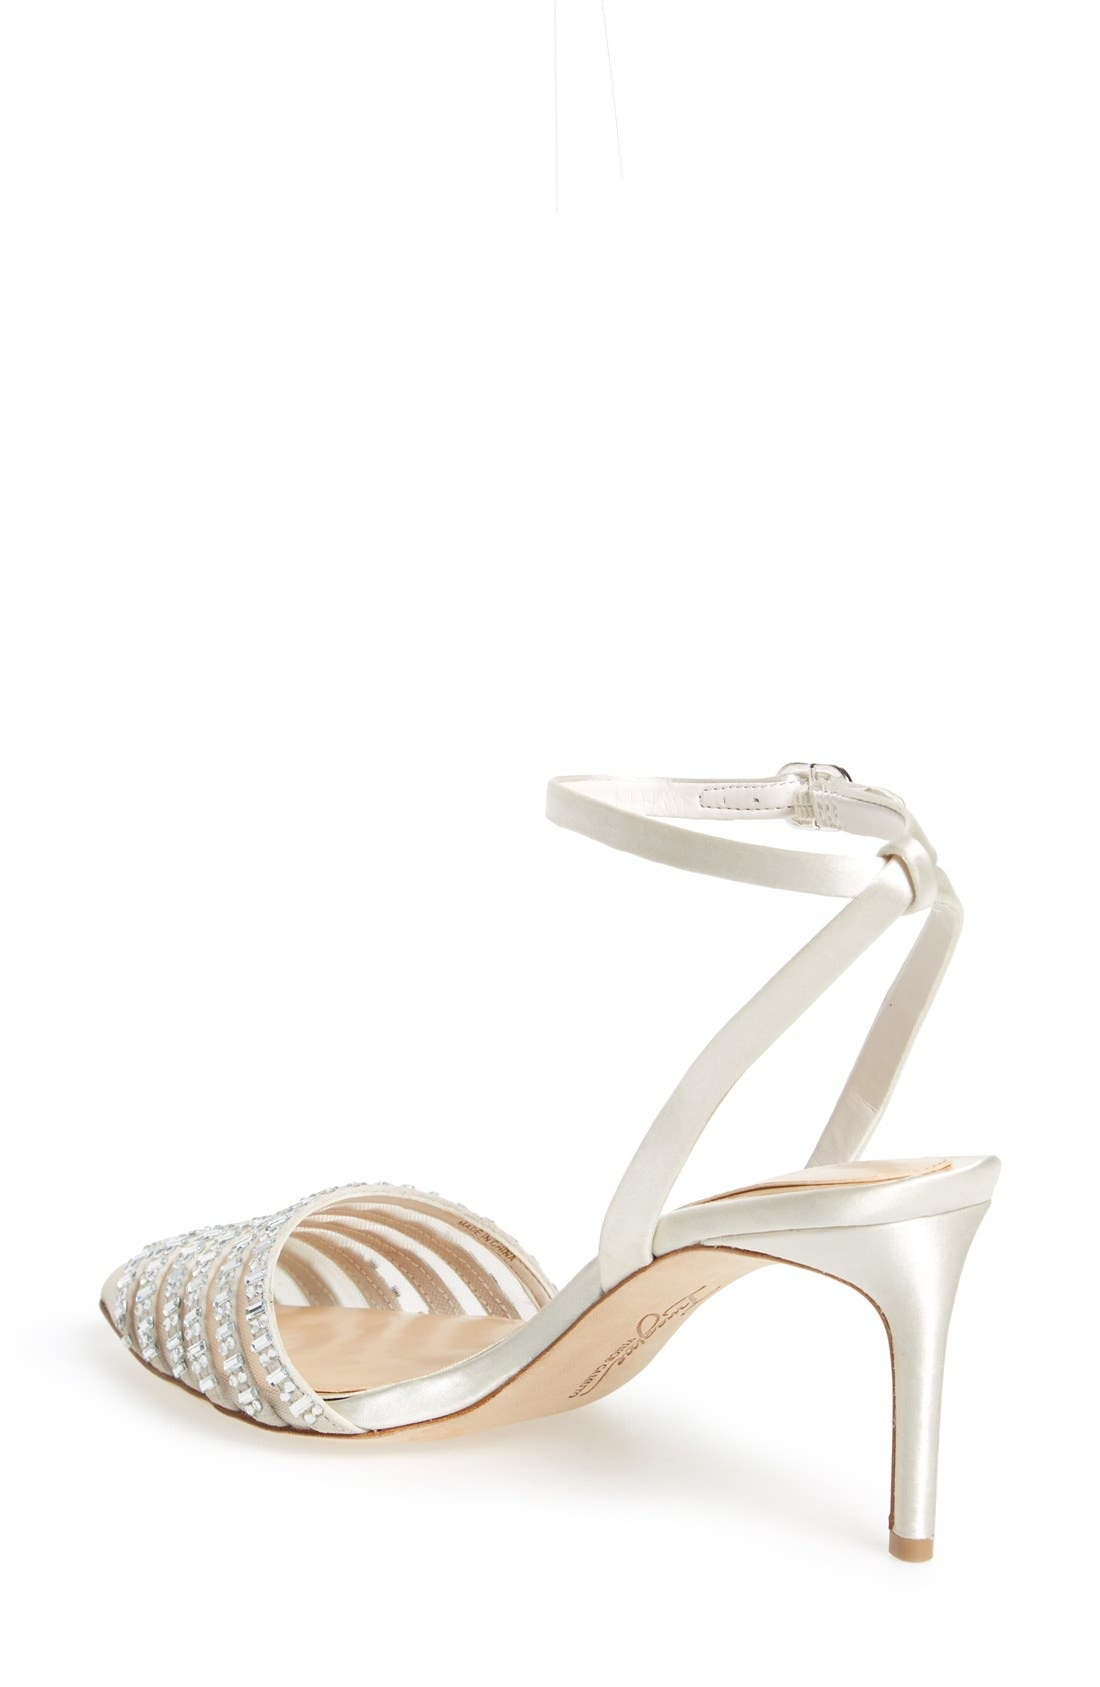 'Michael' Sandal,                             Alternate thumbnail 2, color,                             Ivory Satin